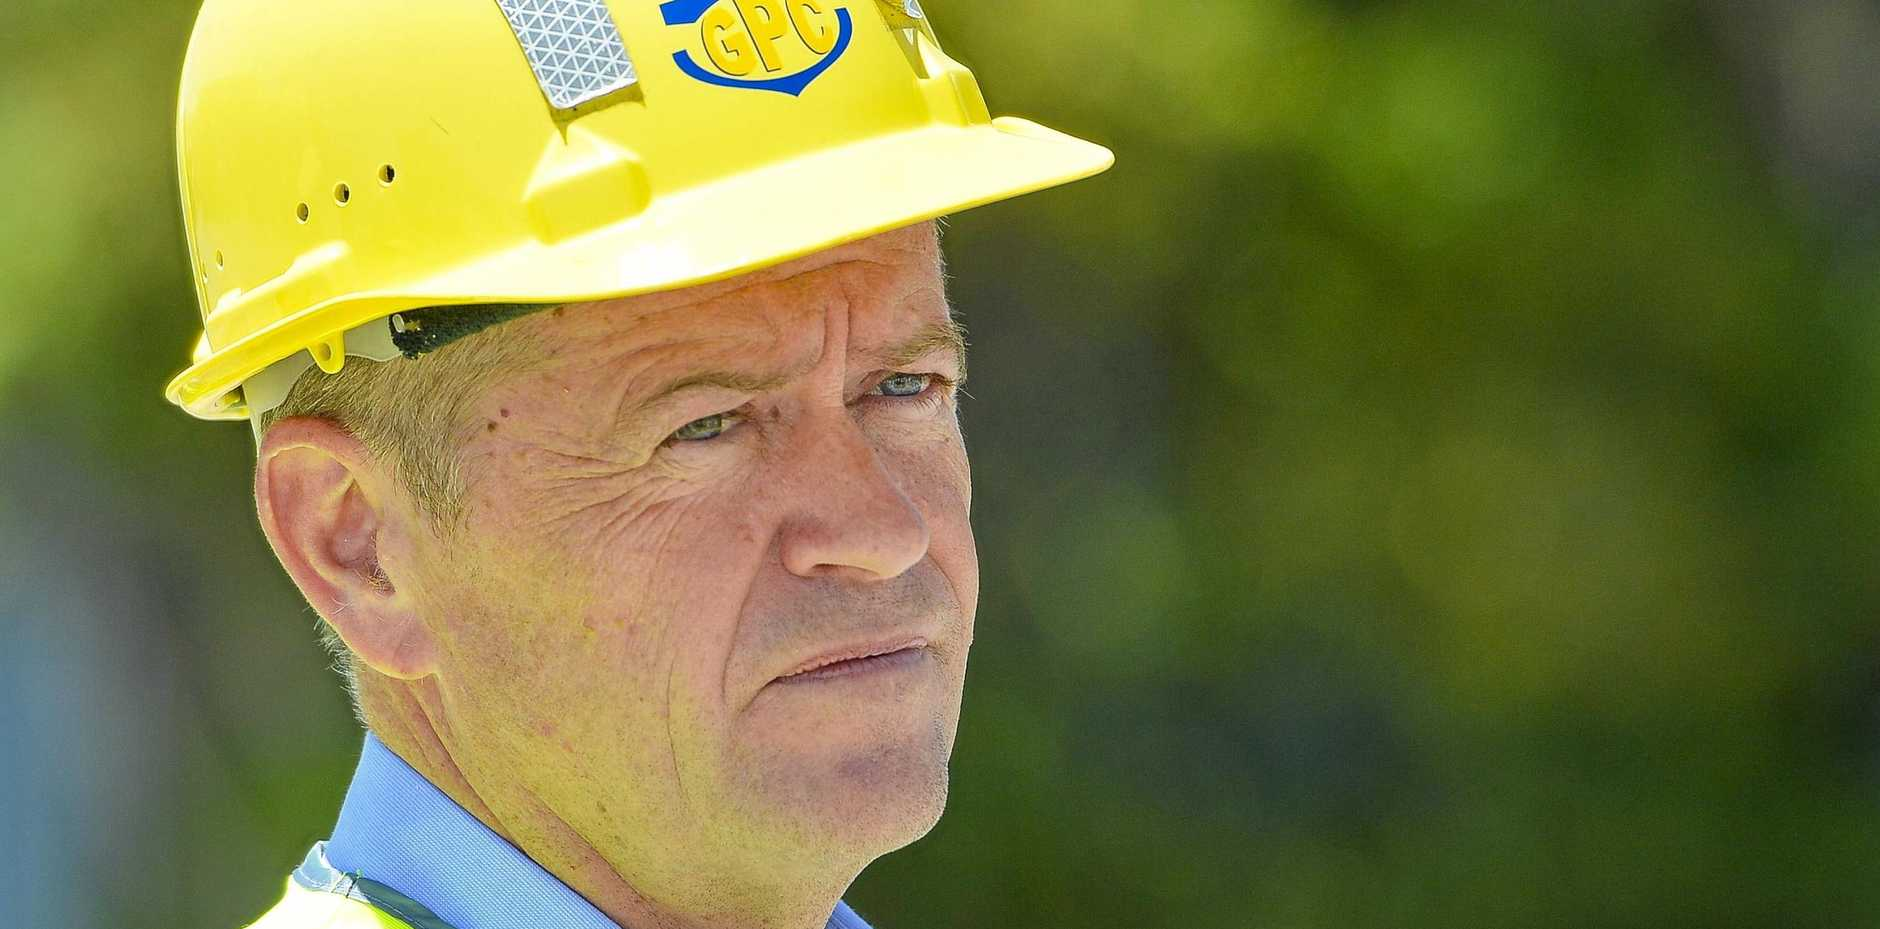 TO THE FUTURE: Bill Shorten continues to survive as Opposition Leader, but for how long?